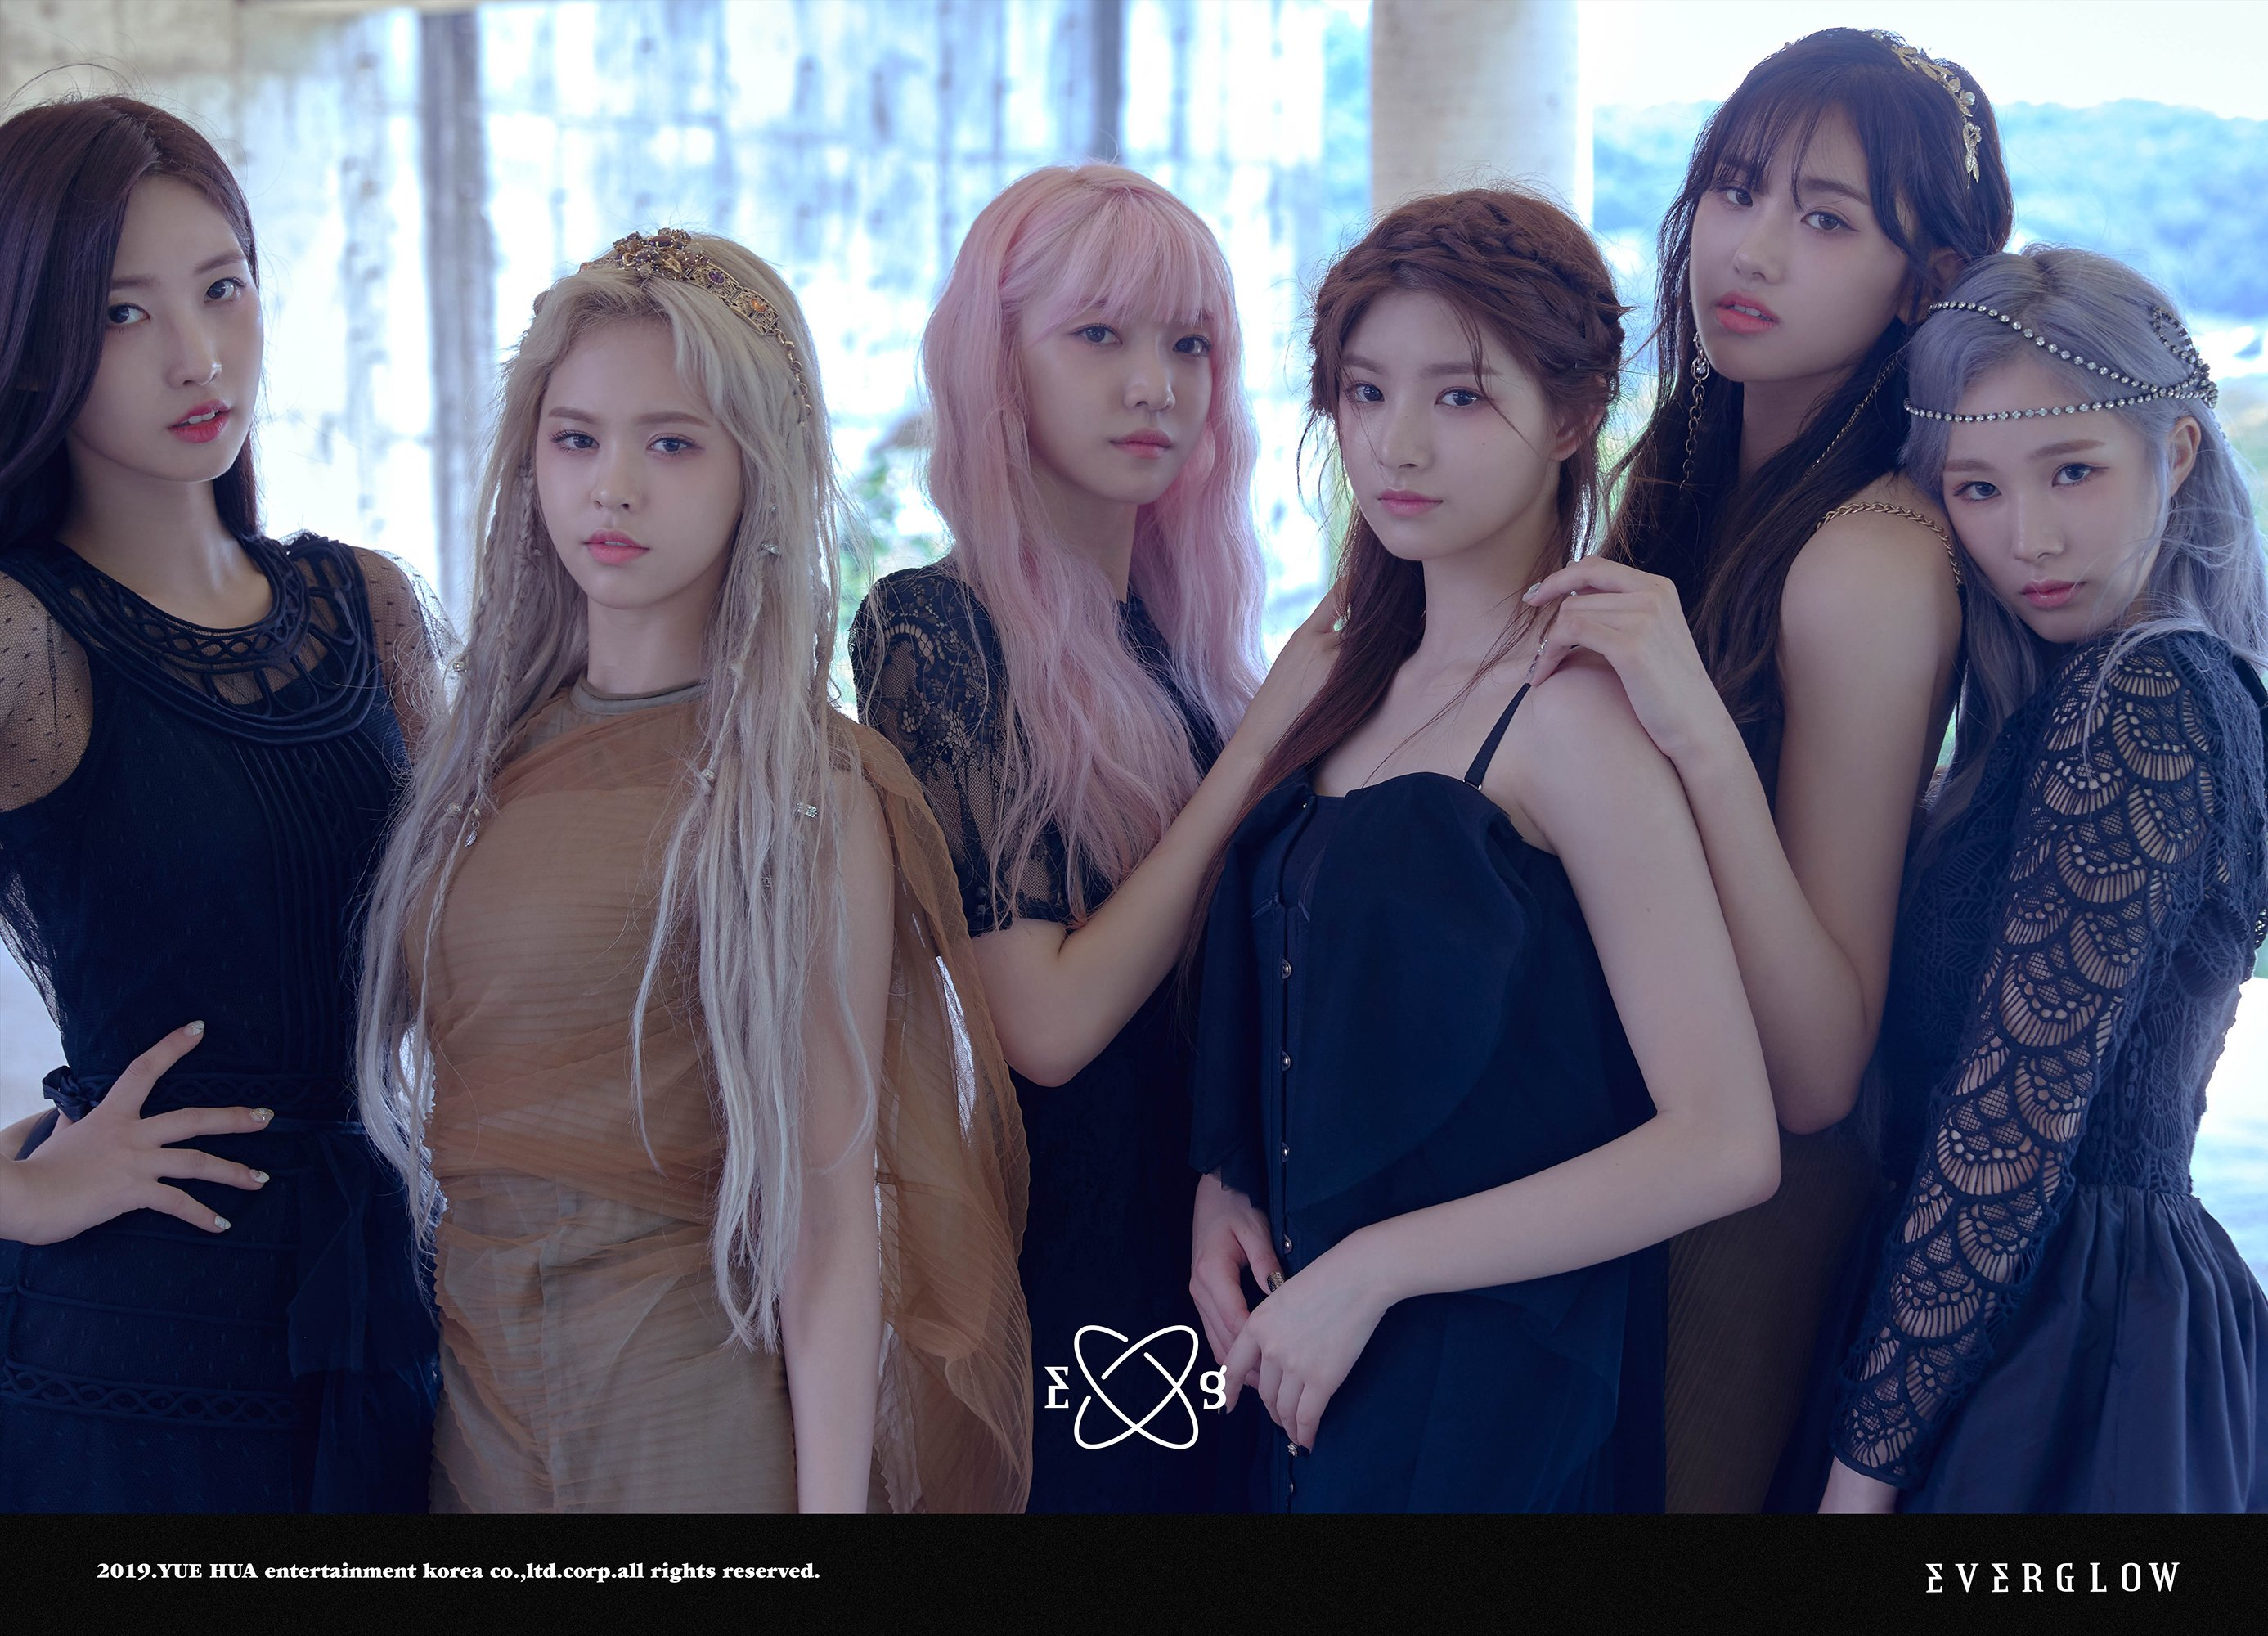 everglow, everglow members, everglow facts, everglow height, everglow age, everglow profile, everglow leader, everglow yuehua, everglow rookie